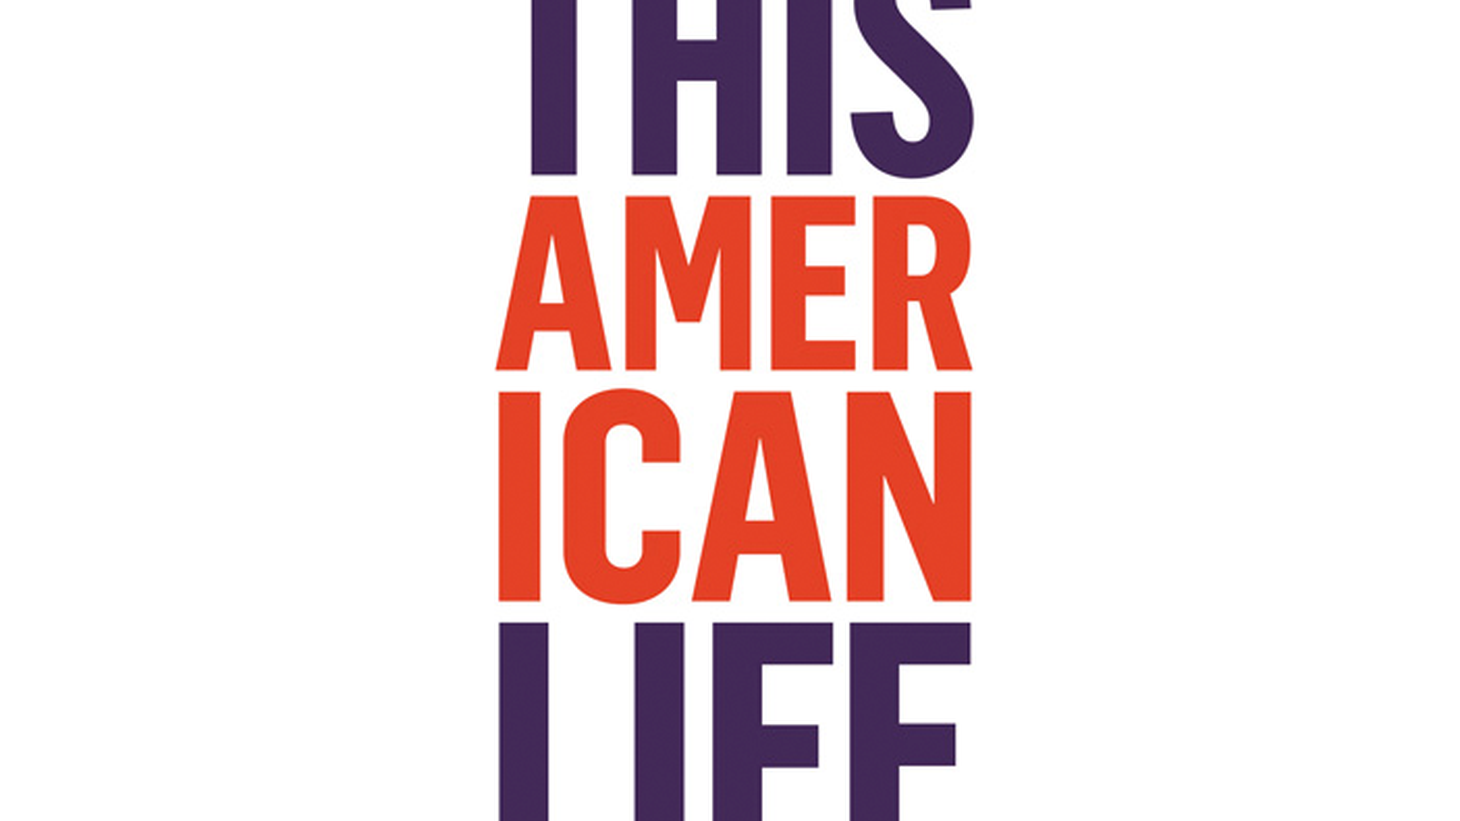 This week's show features some &quotbest-of&quot moments from This American Life.